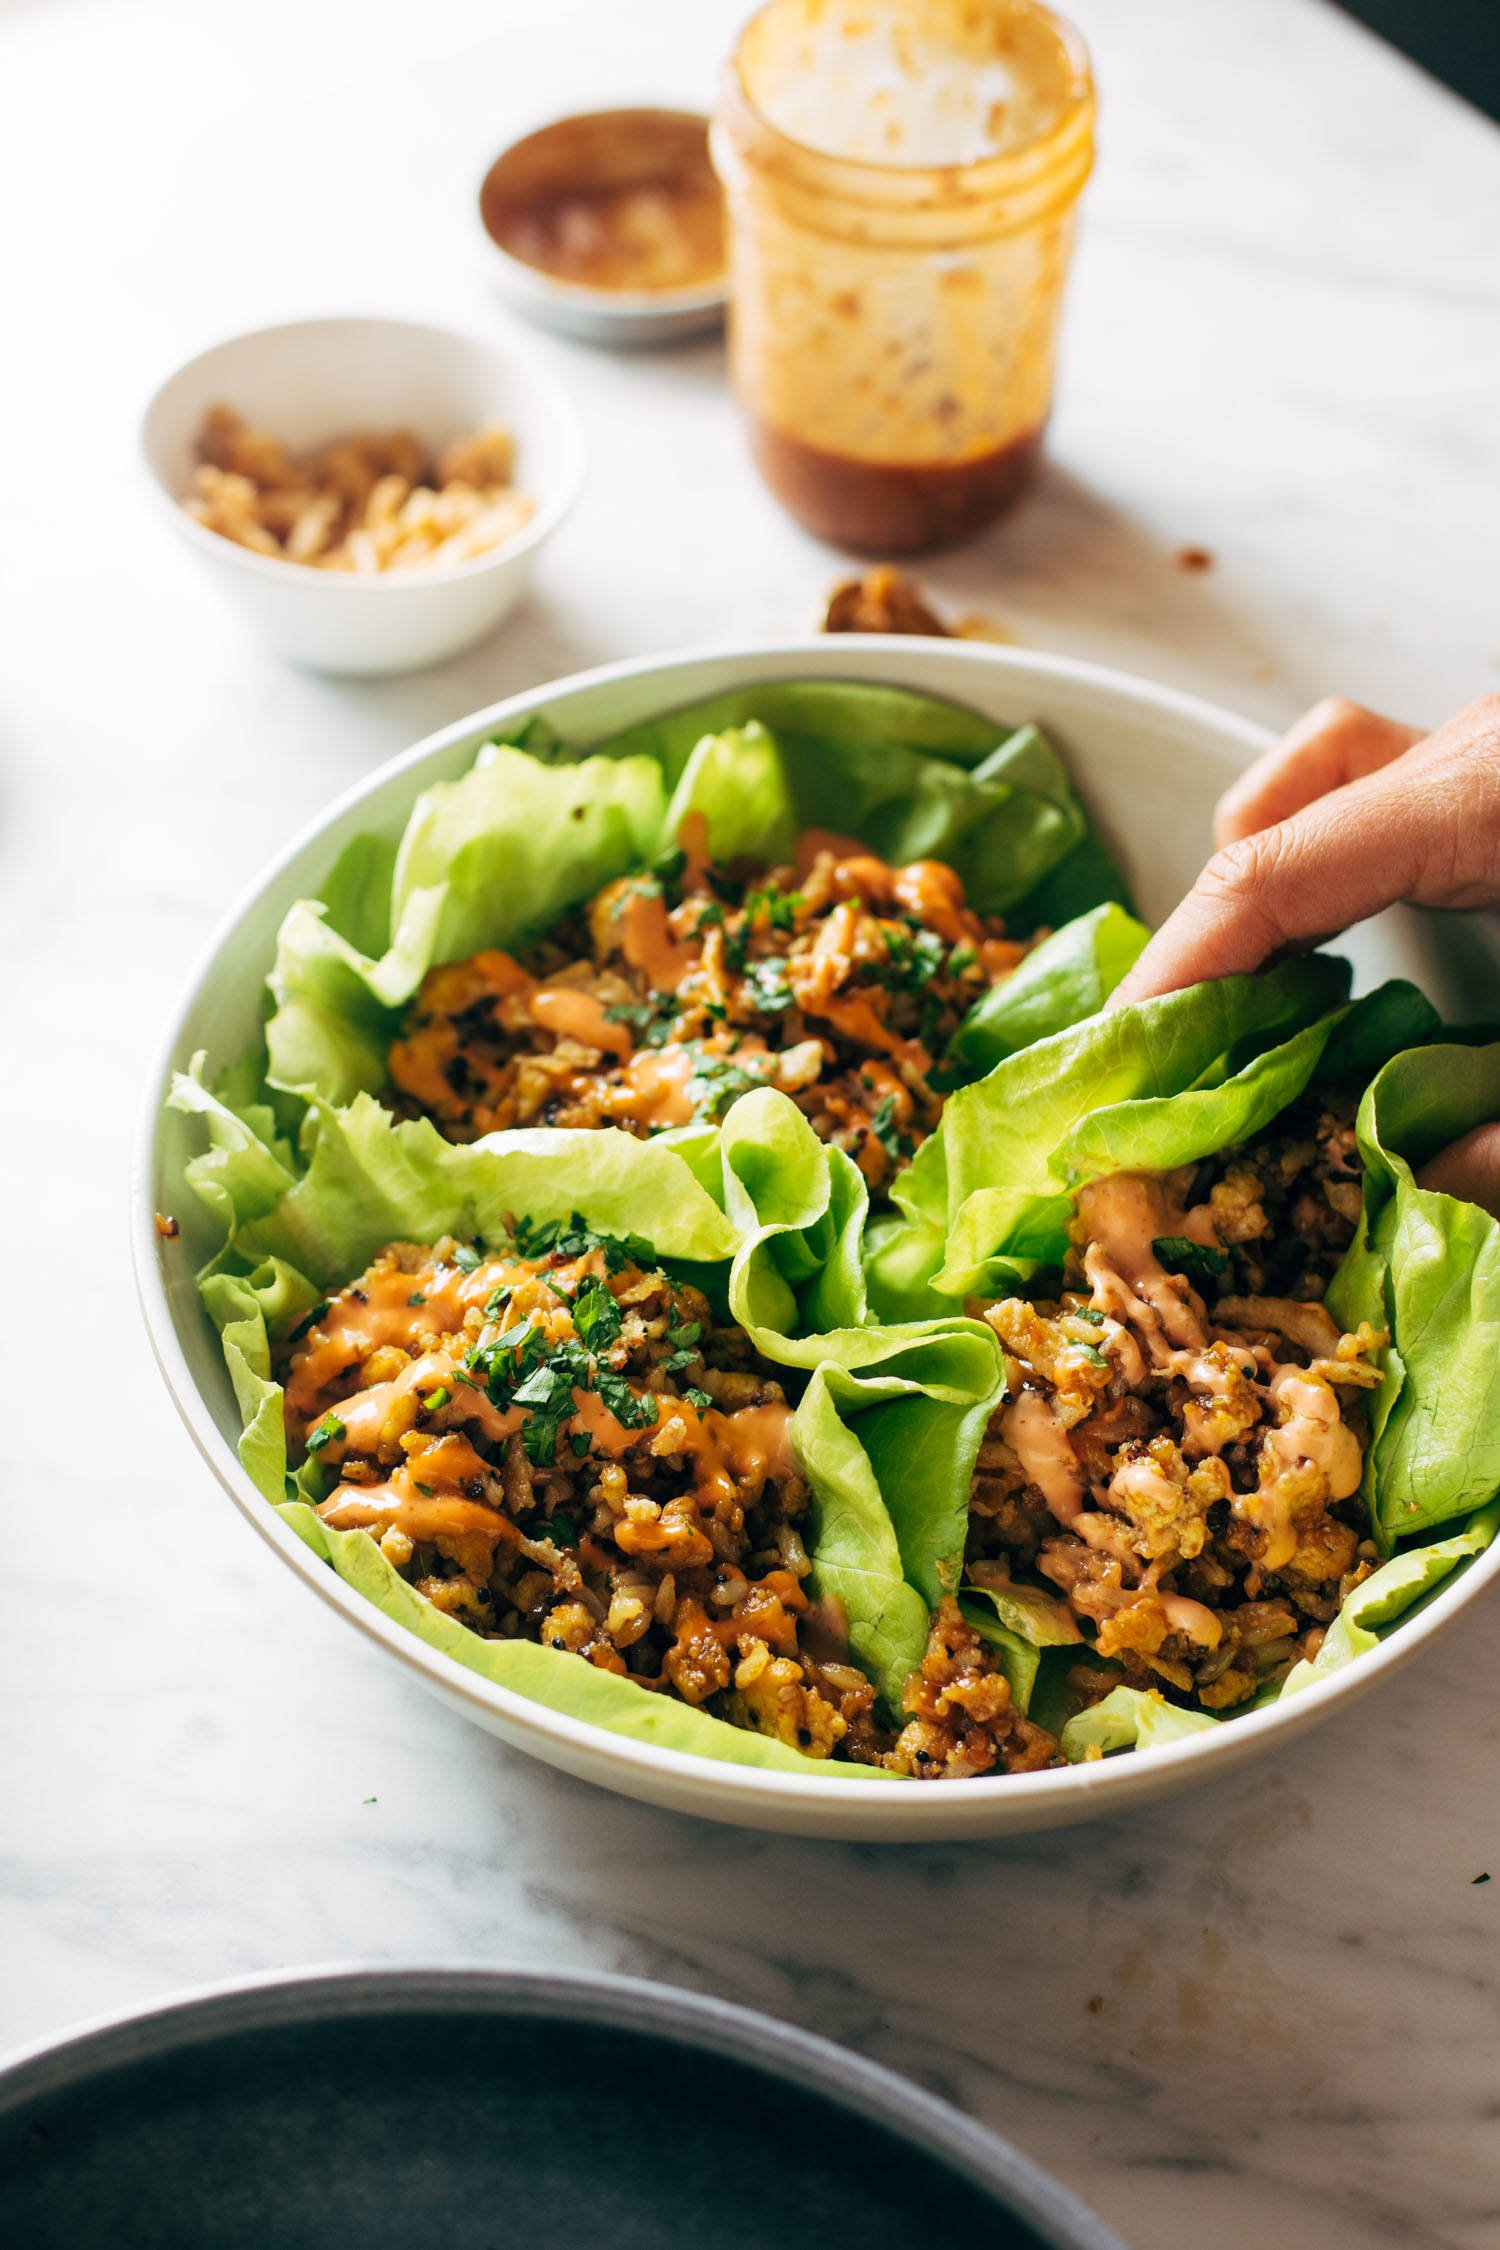 A white hand grabbing a tofu and brown rice lettuce wrap on a platter. There are extra ingredients for the lettuce wraps in the background.